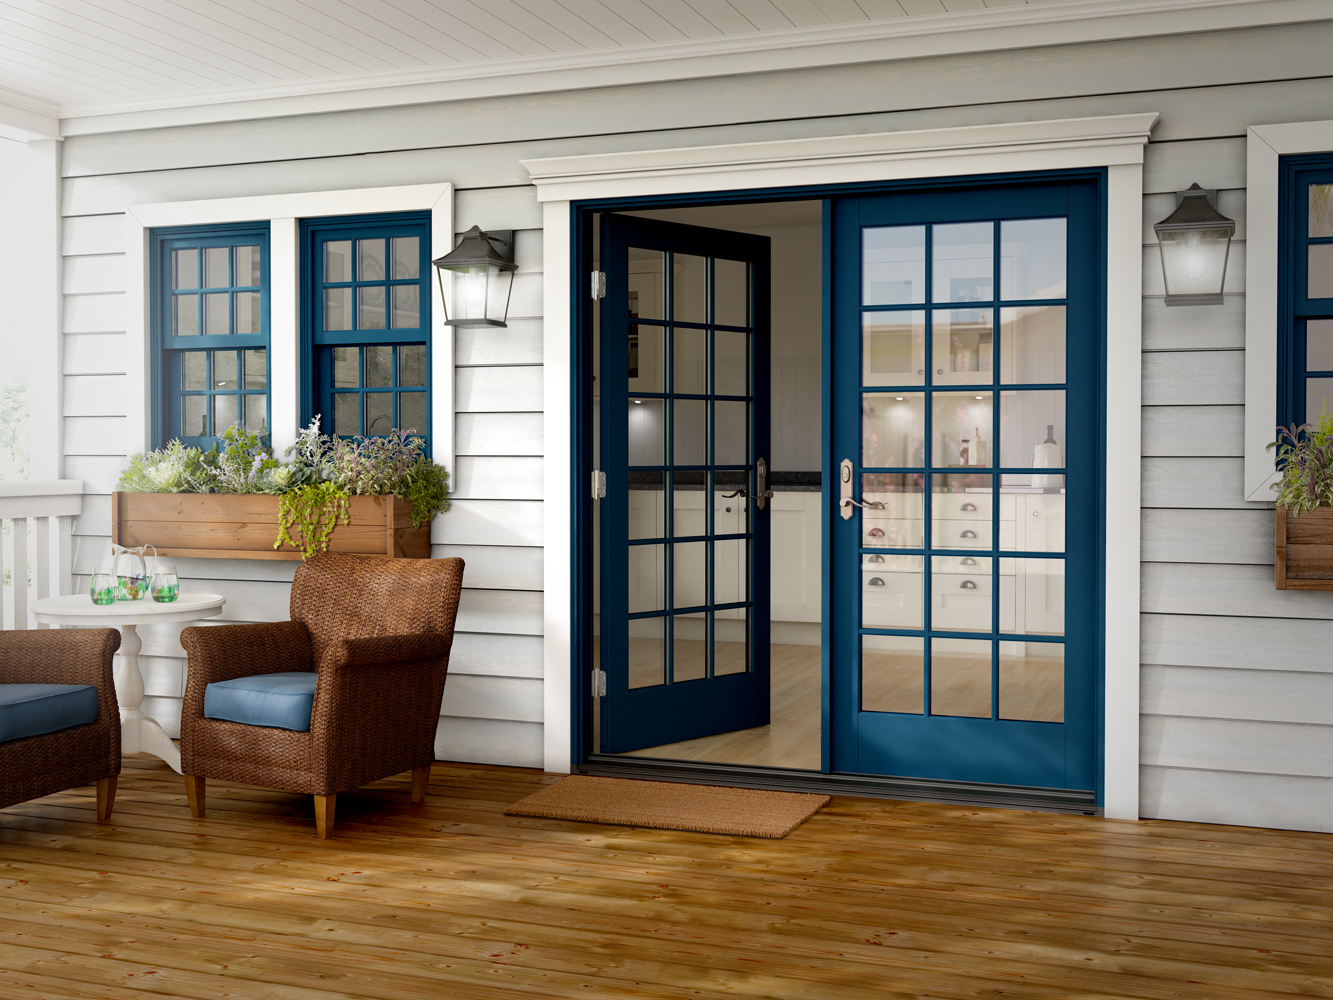 pix-us-cg-blue-doors